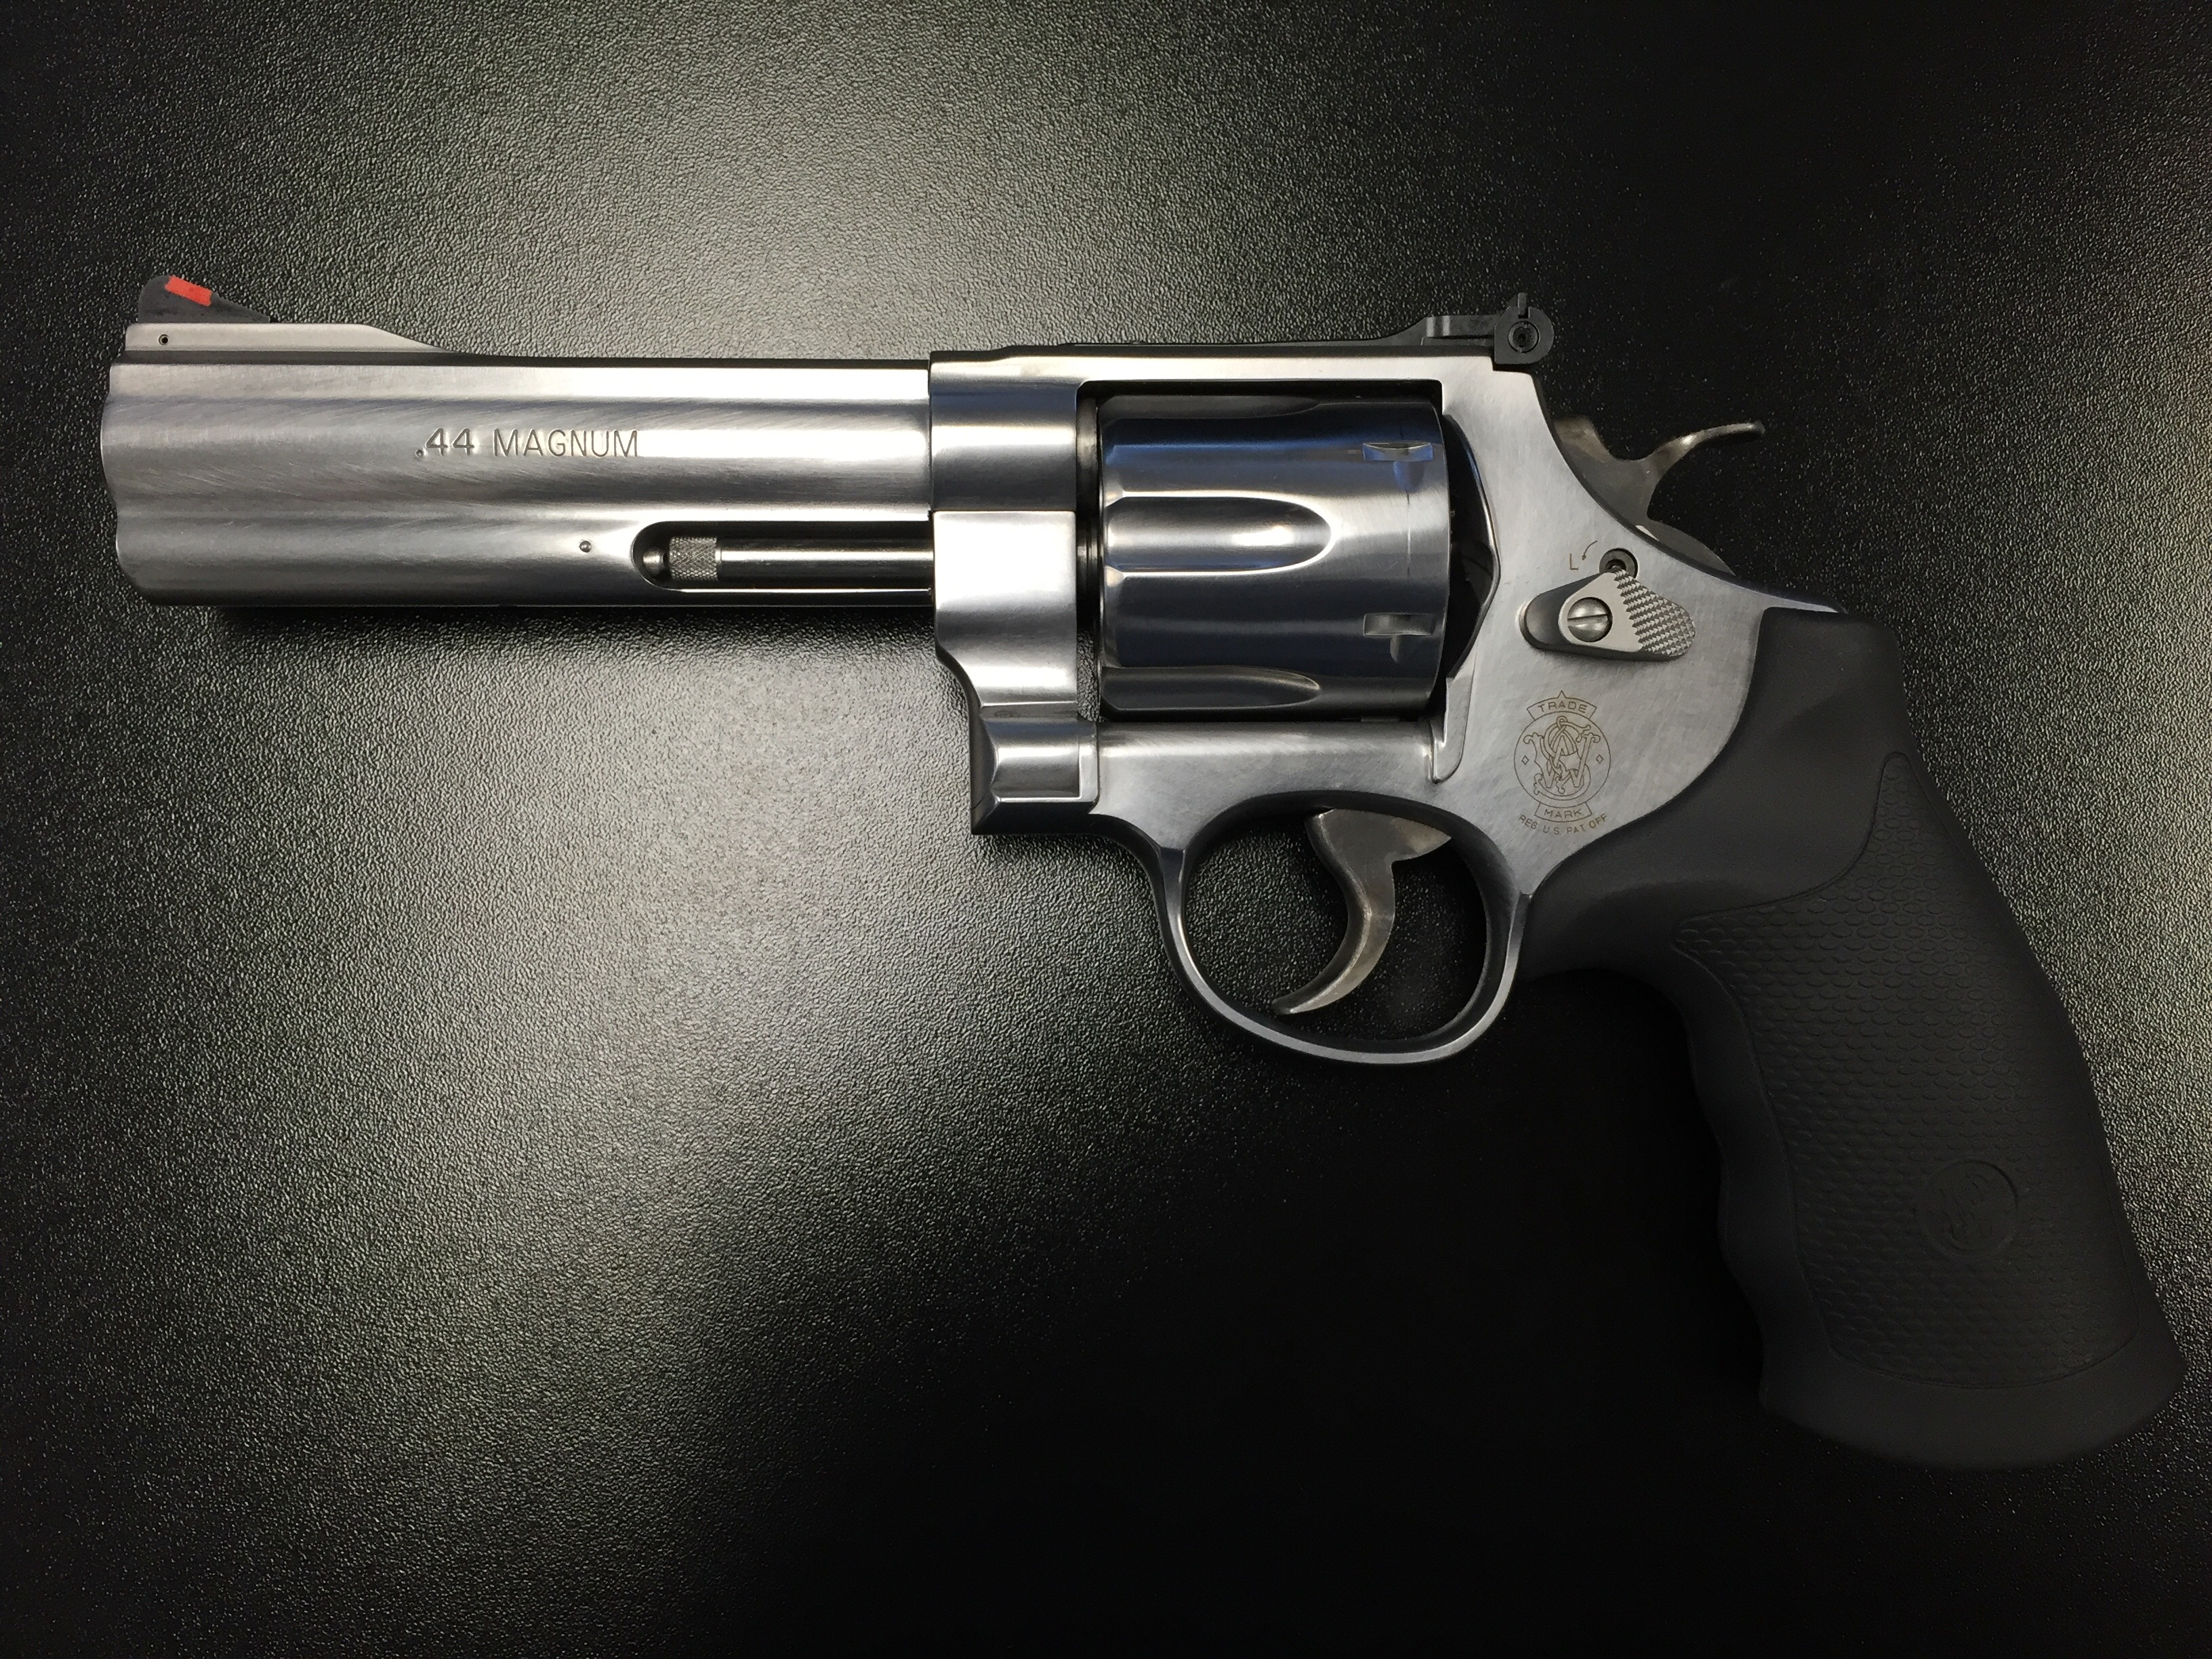 Smith & Wesson Model 629 ...